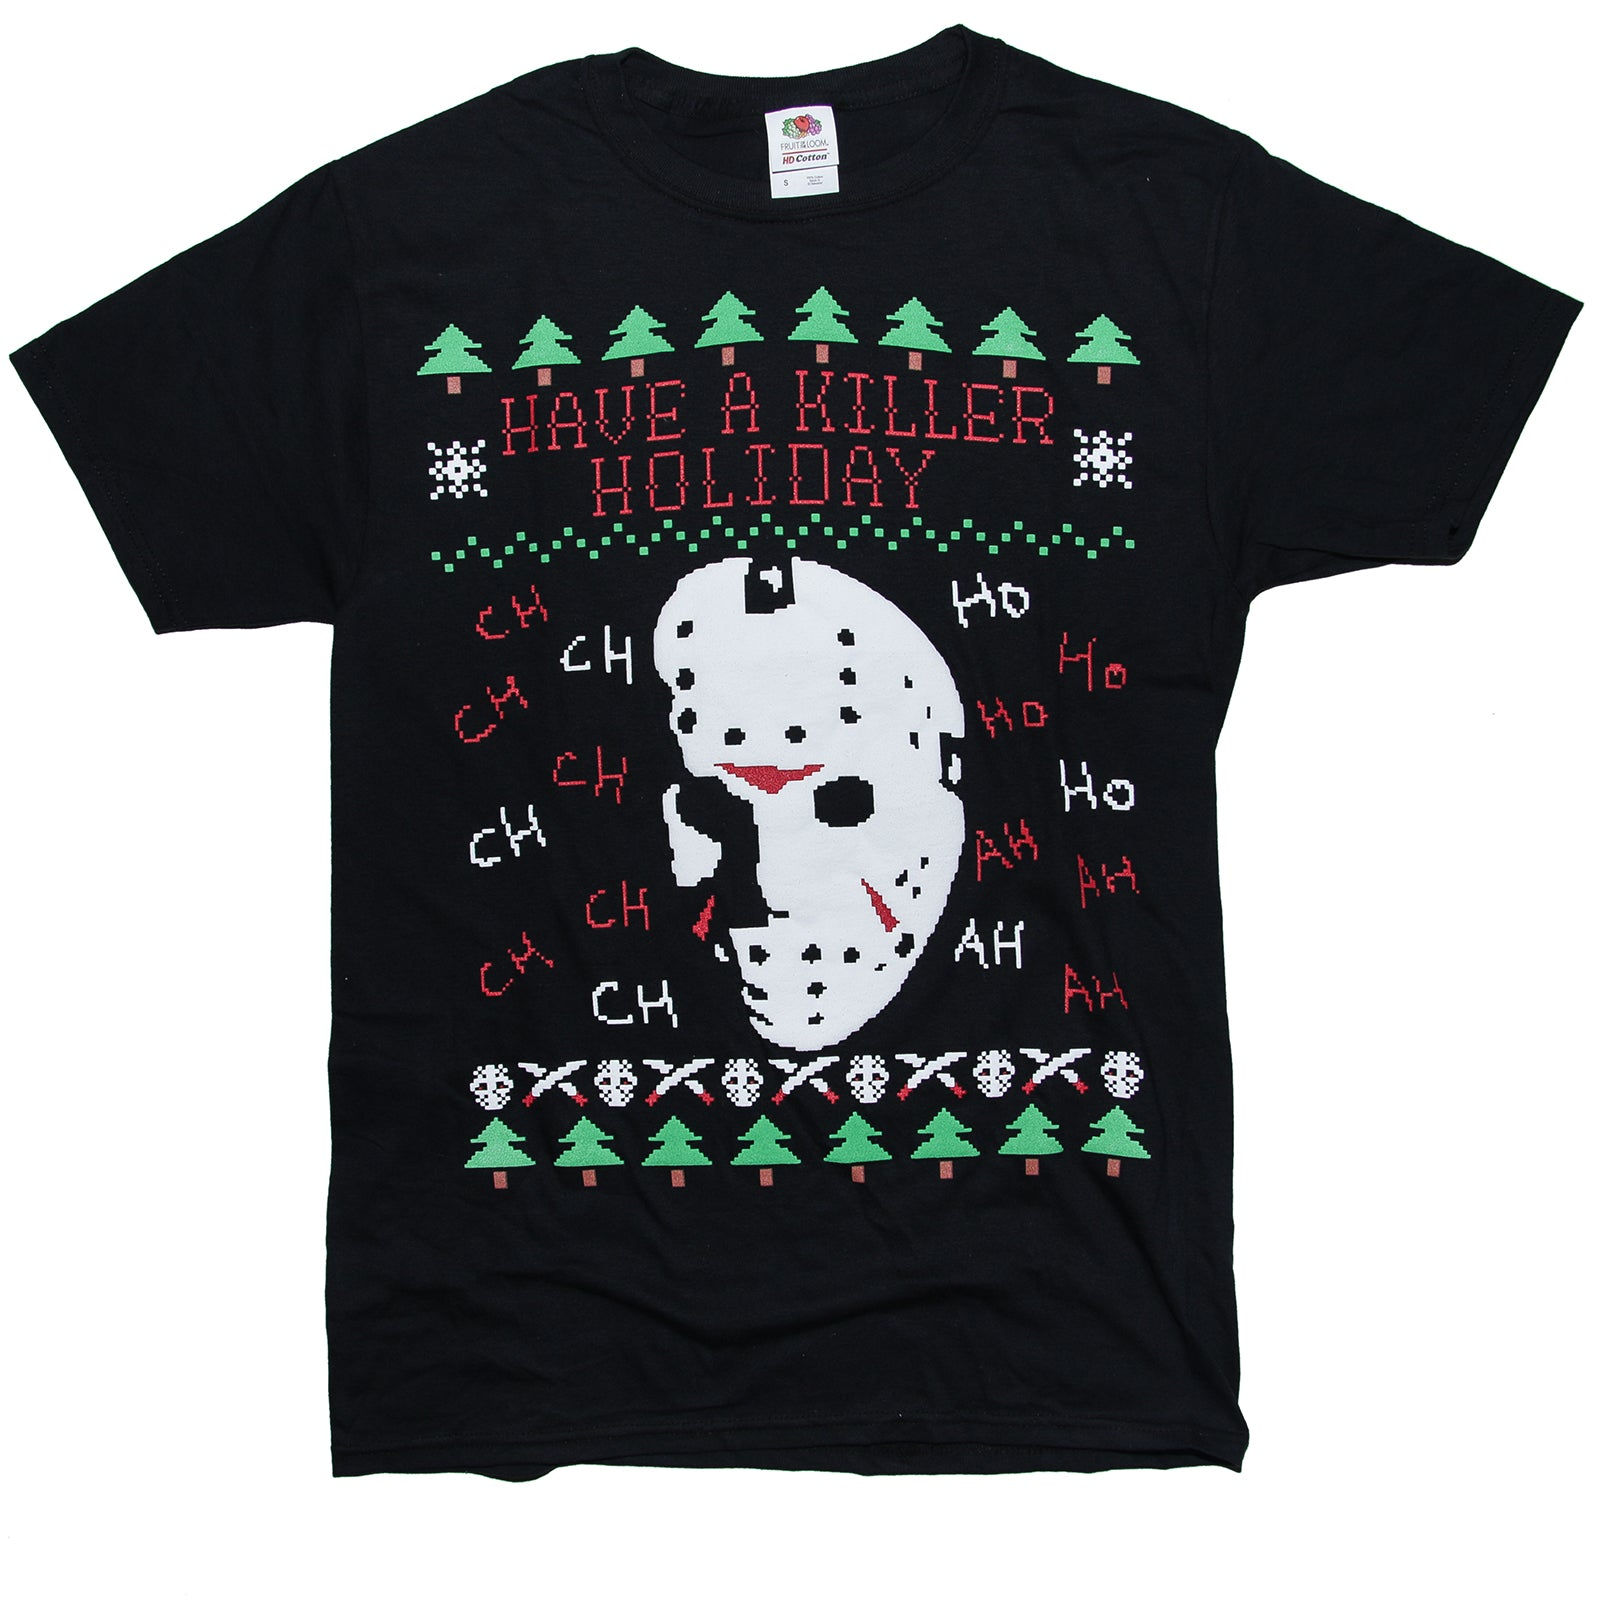 Friday the 13th Jason Voorhees  HAVE A KILLER HOLIDAY T Shirt